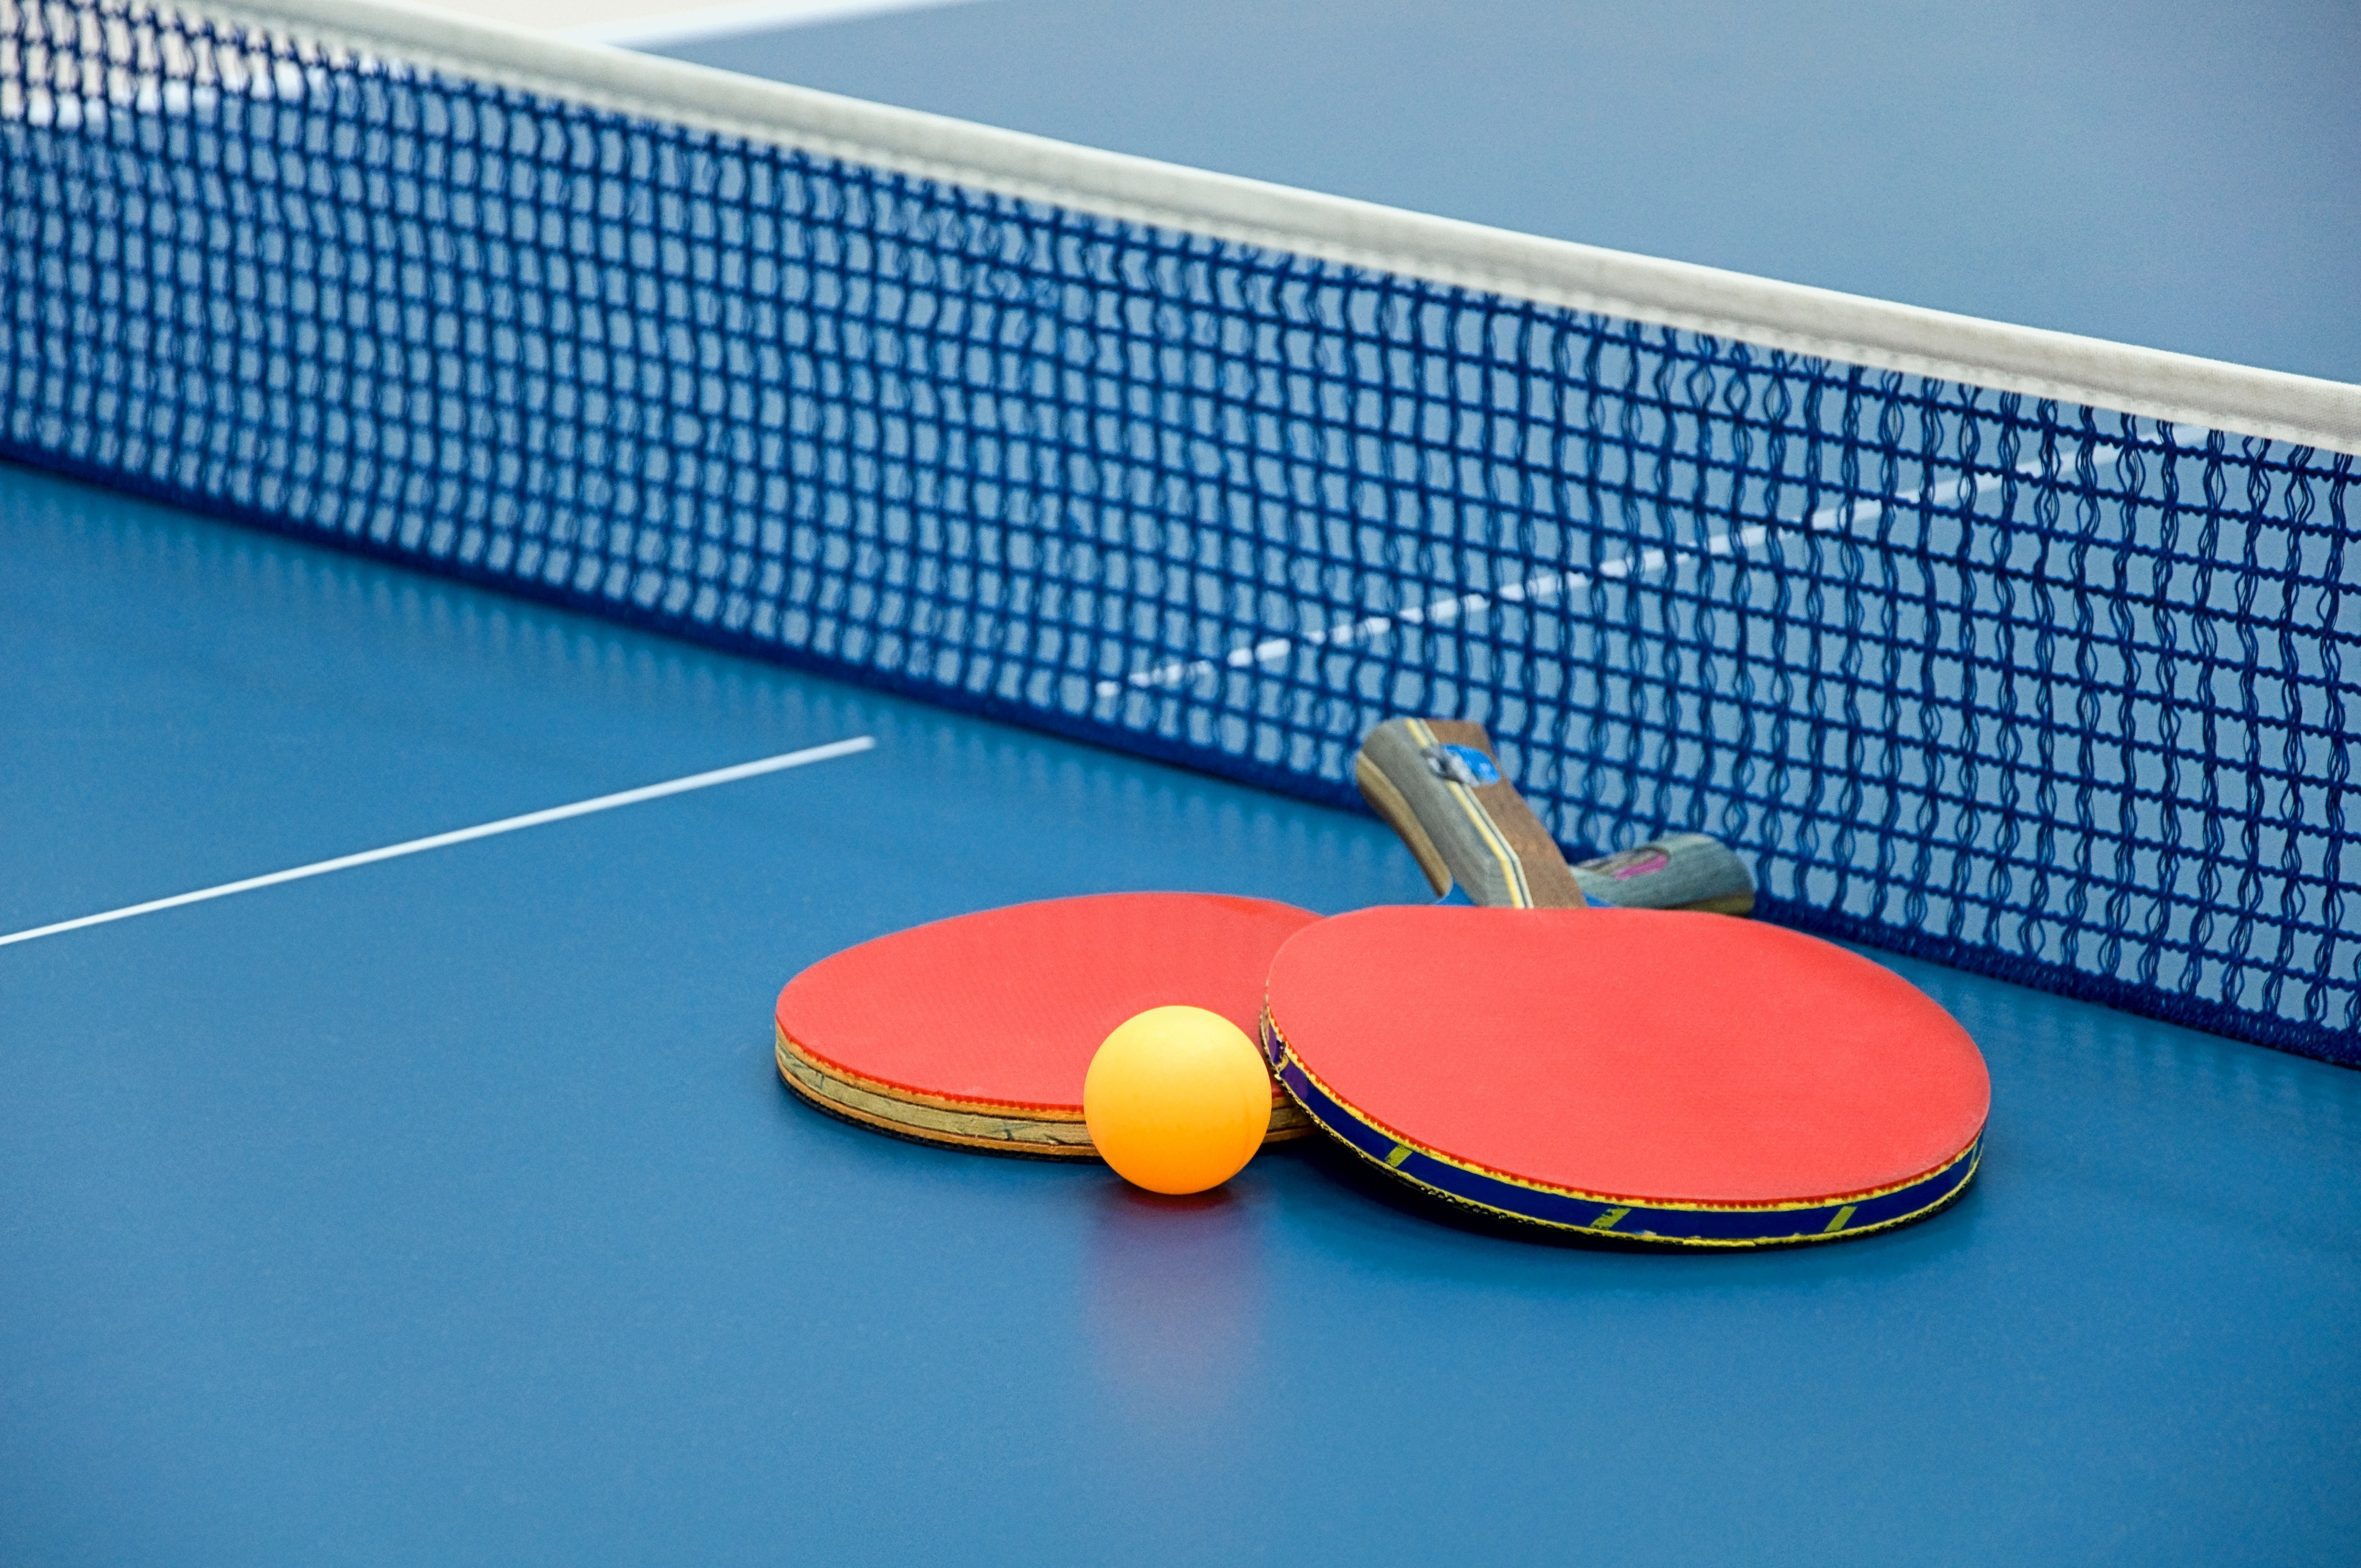 NXNW Ping Pong Tourment - 365 Things to Do in Austin, TX